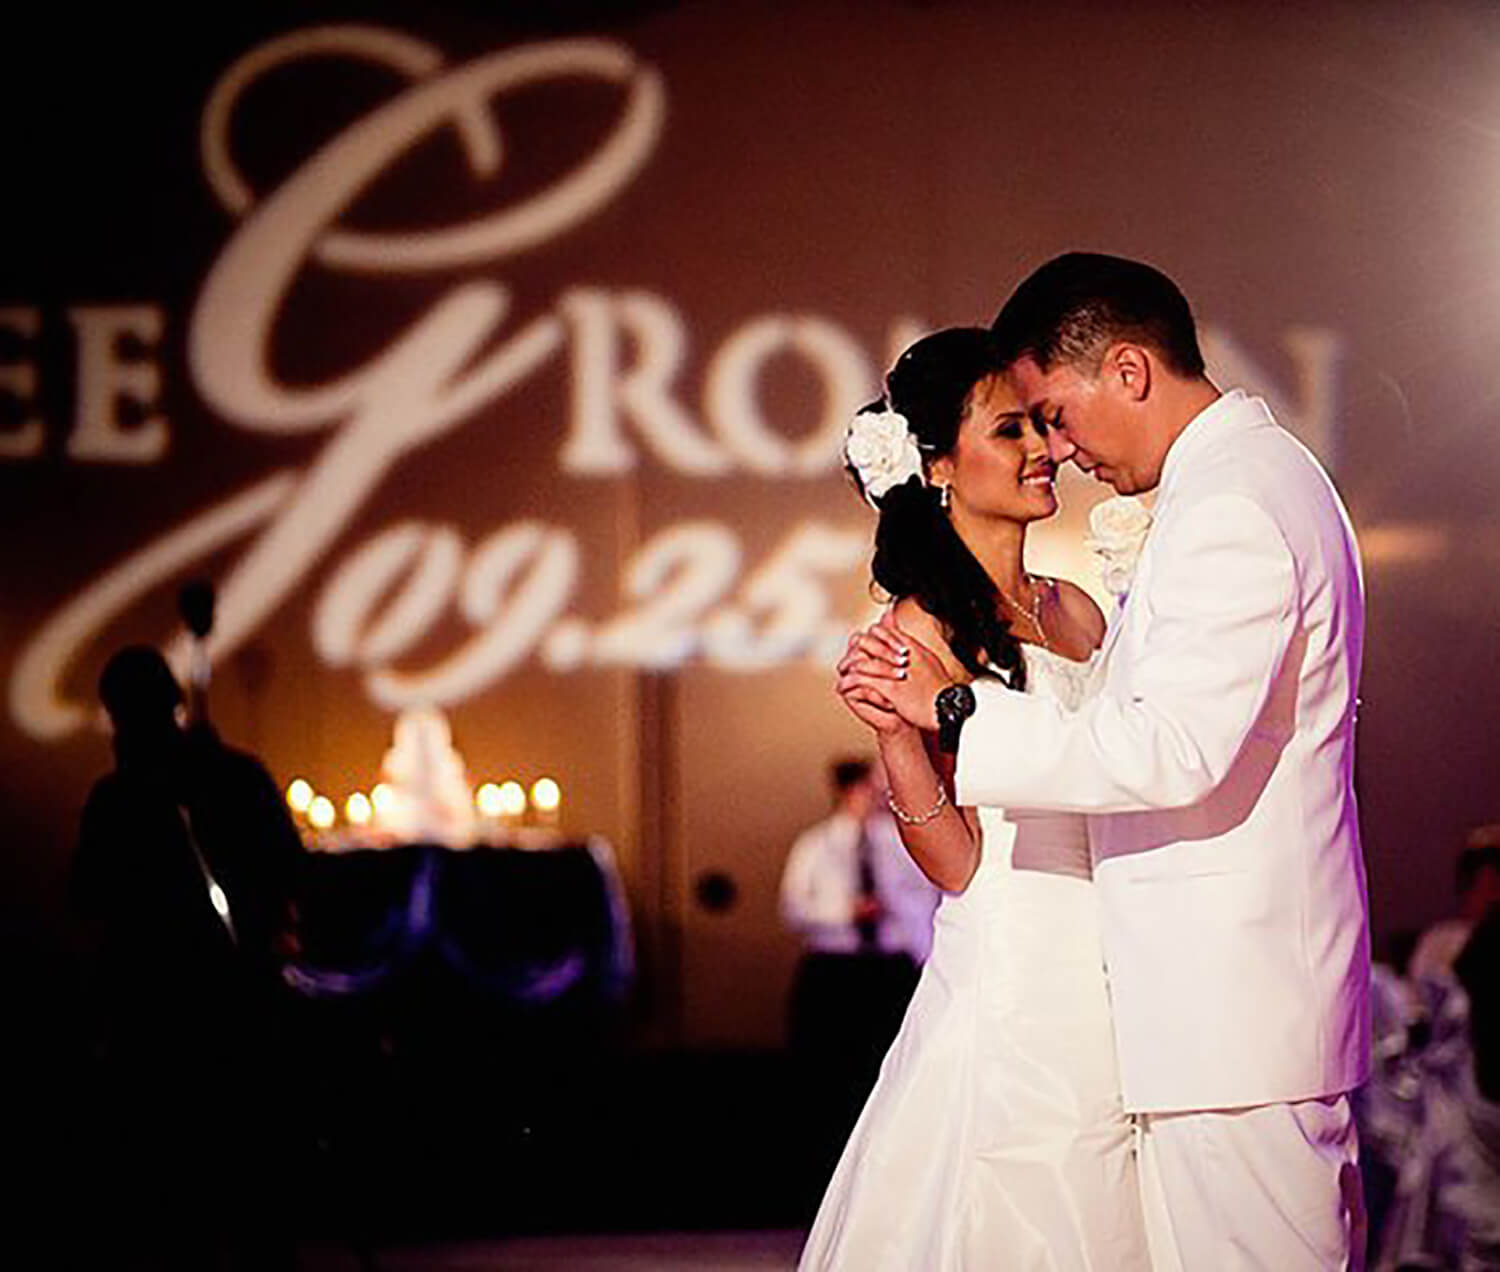 San Diego dj weddings - Becks Entertainment